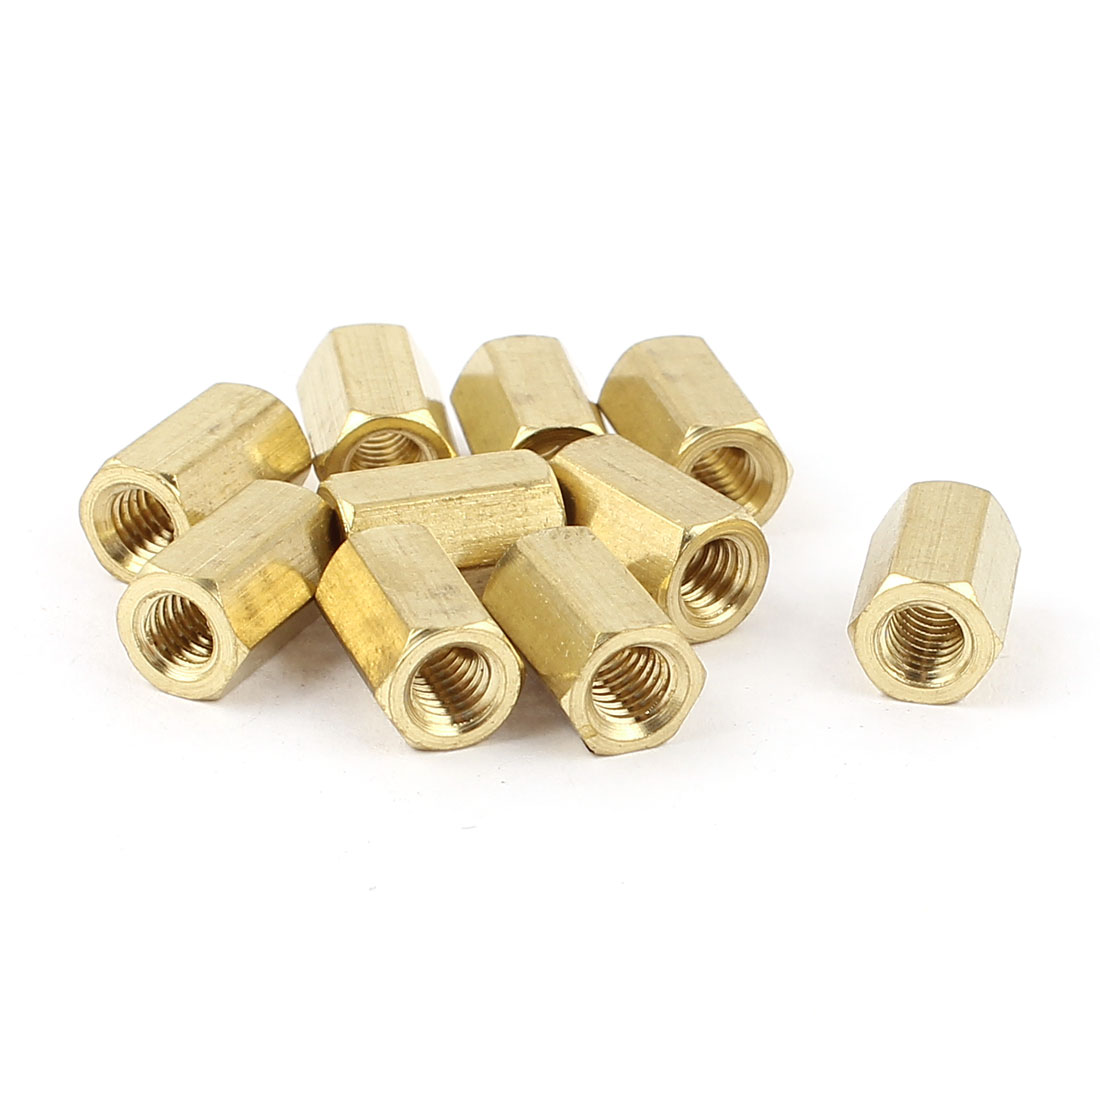 M4 x 10mm Female/Female Thread Brass Hex Standoff PCB Pillar Spacer 10pcs